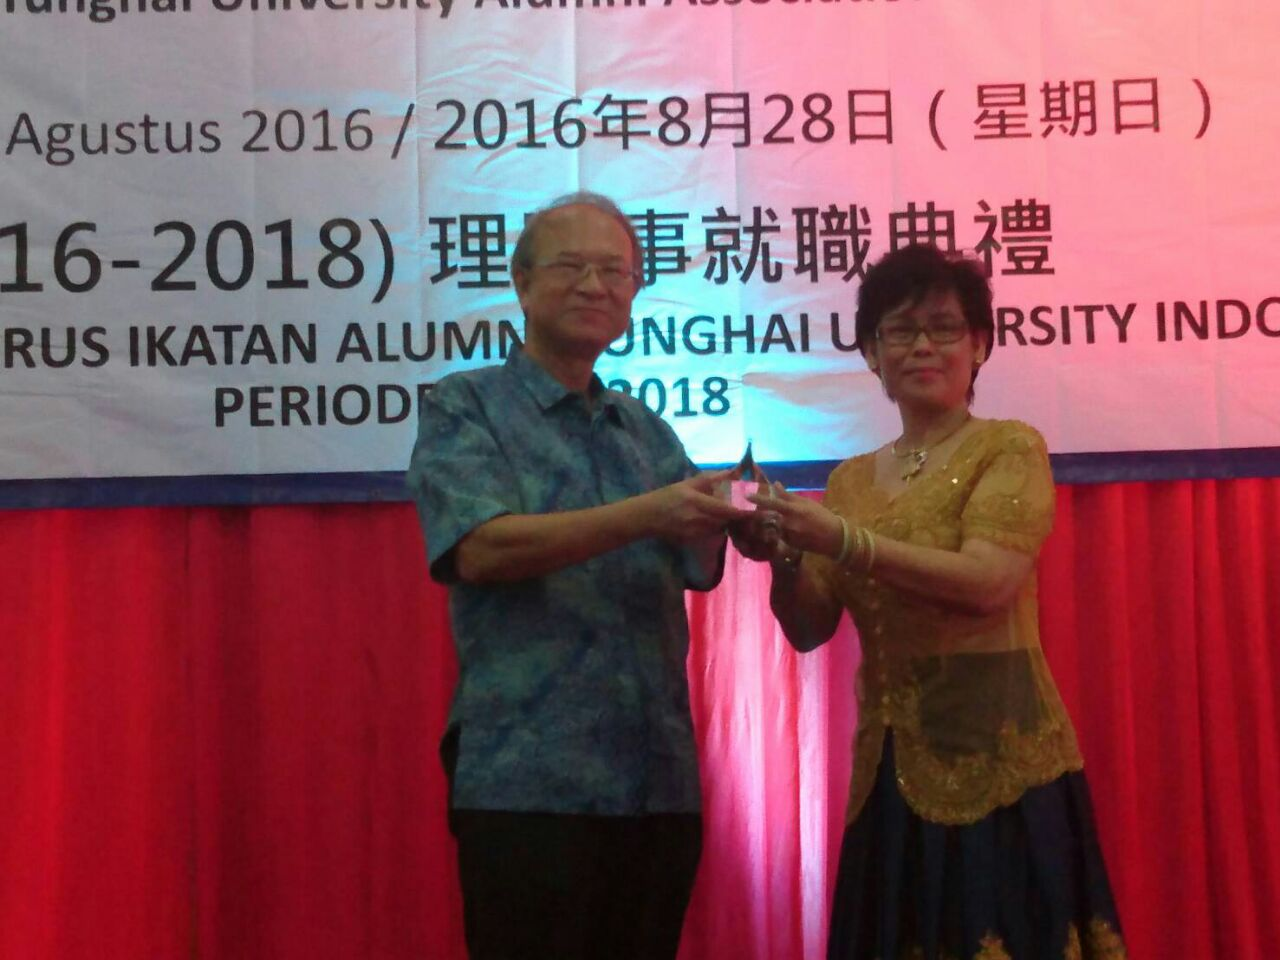 On August 28, 2016, the Tunghai University Alumni Association Indonesia held the (2016-2018) Chairperson and Director Inaugural Ceremony in Jarkata, Indonisia.